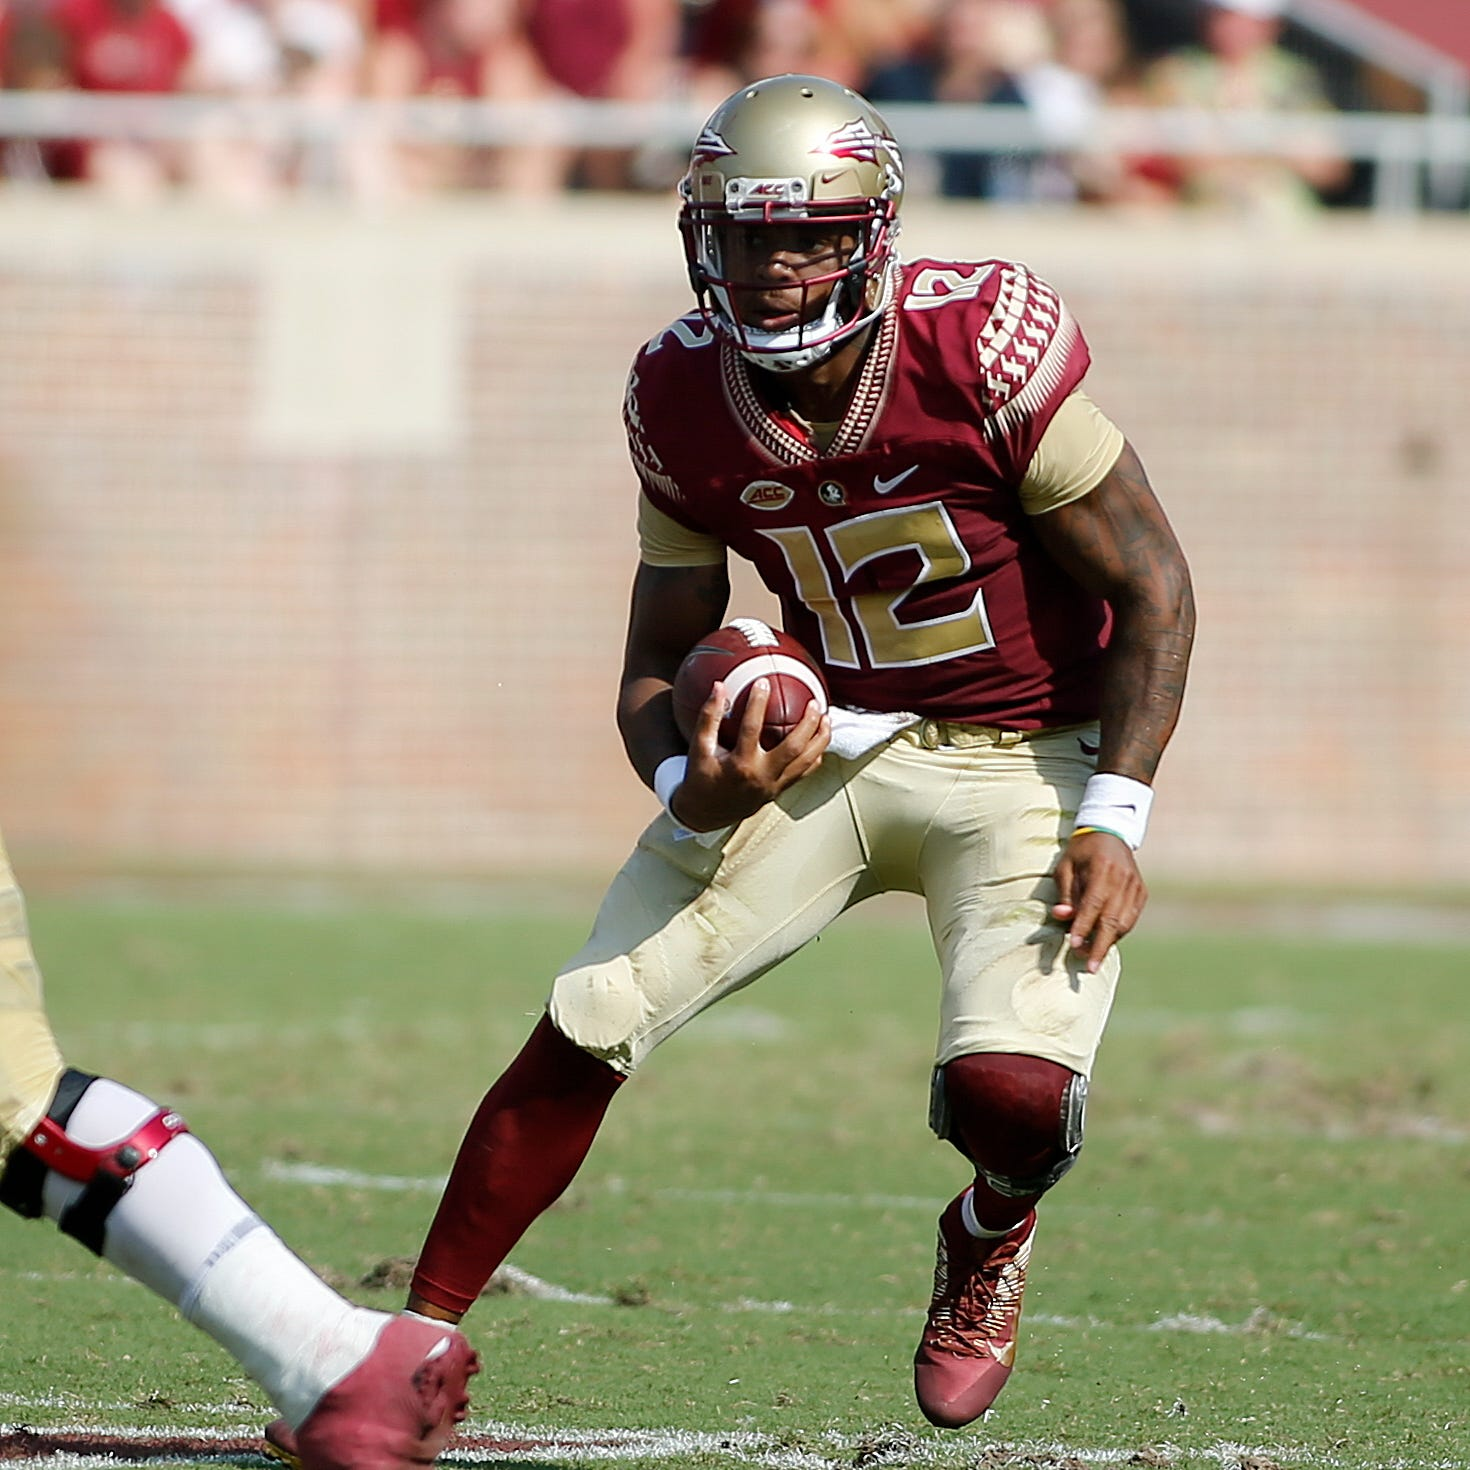 Sep 22, 2018; Tallahassee, FL, USA;  Florida State Seminoles quarterback Deondre Francois (12) runs during the first quarter of play at Doak Campbell Stadium.